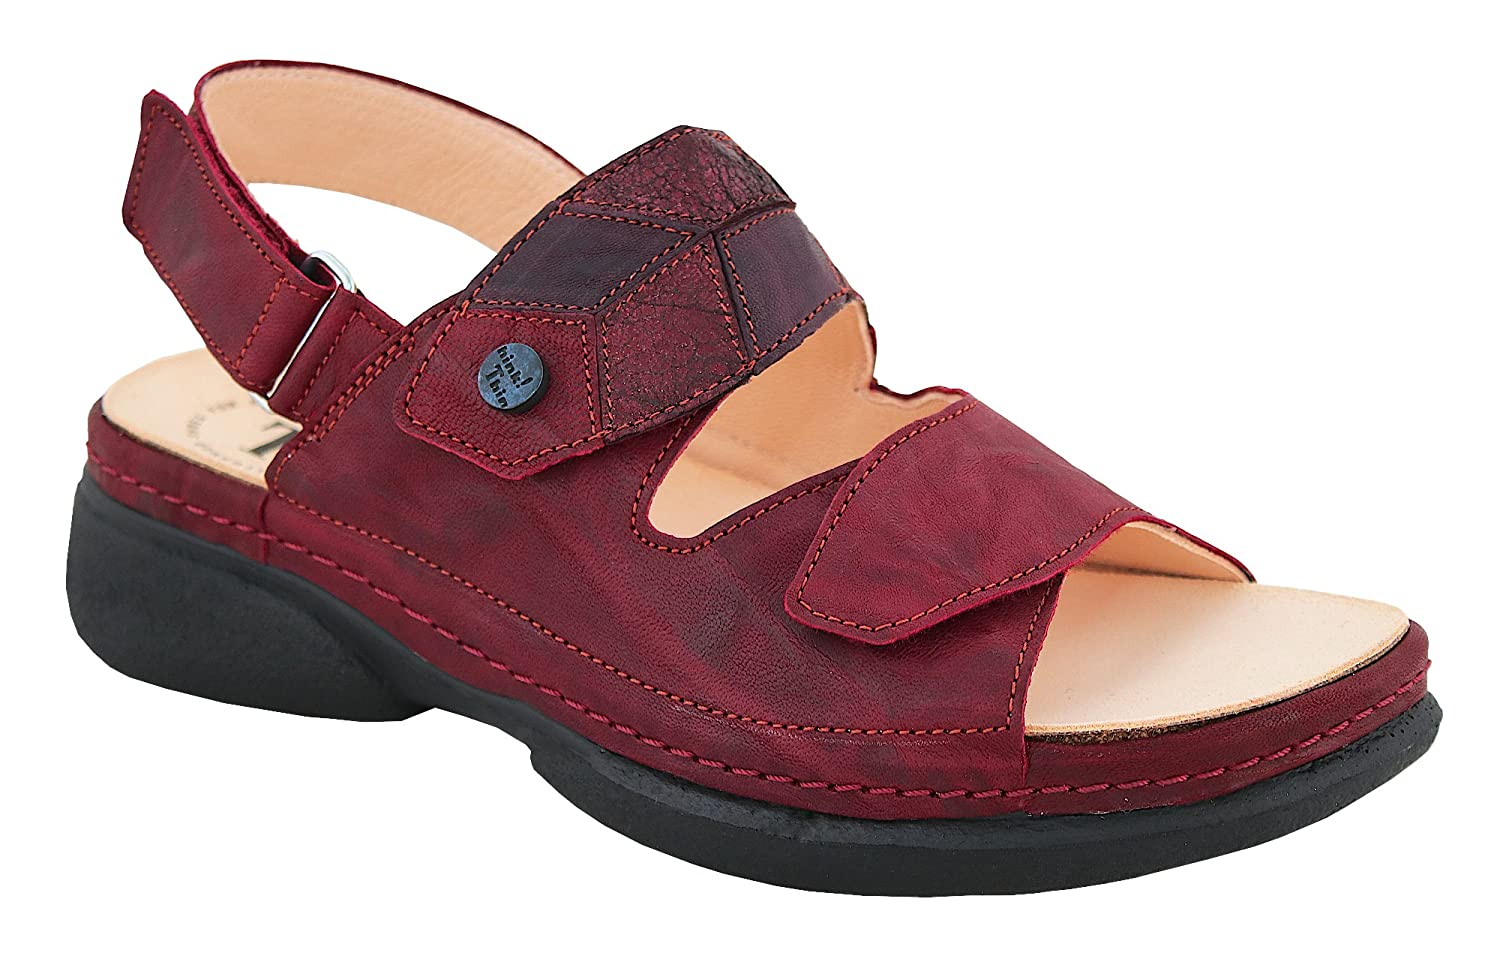 Think! 81403-72 Damen Sandale CAMBIO 81403-72 Think! Rosso/Kombi - 9c284a